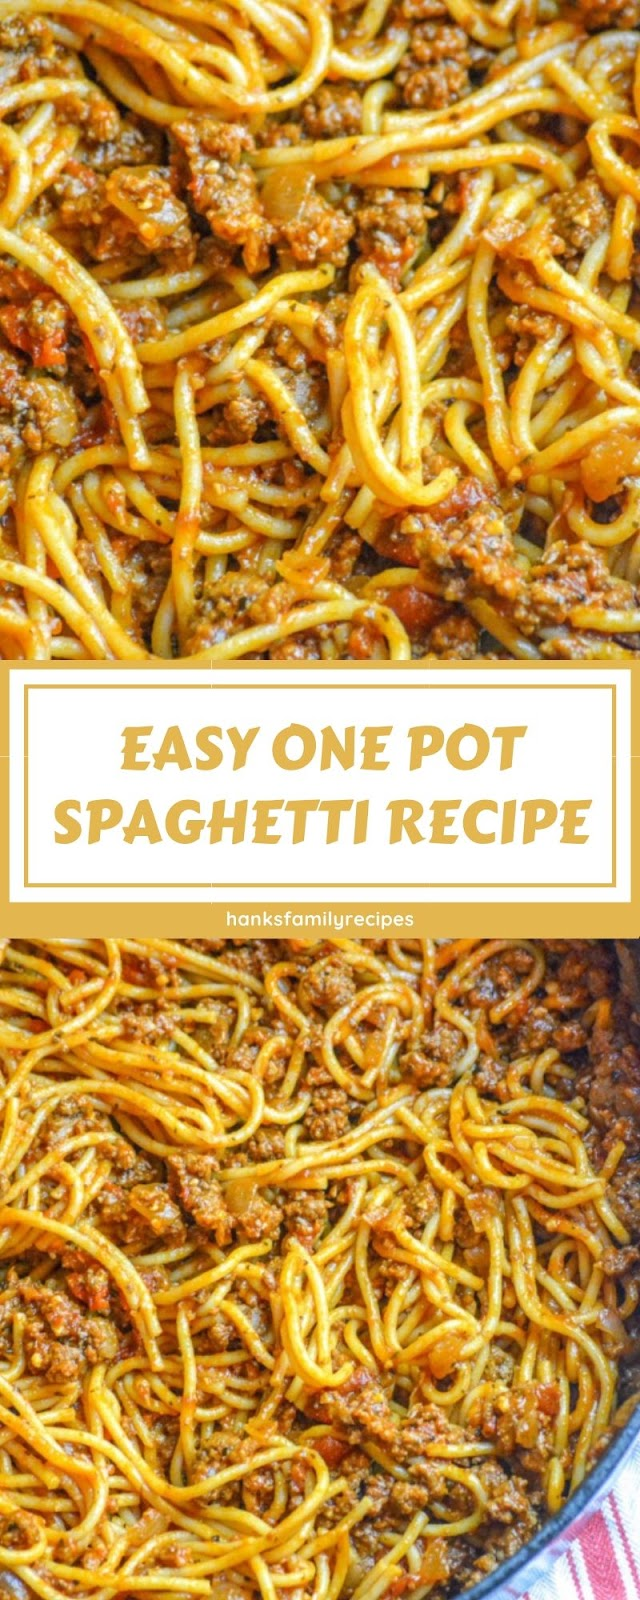 EASY ONE POT SPAGHETTI RECIPE